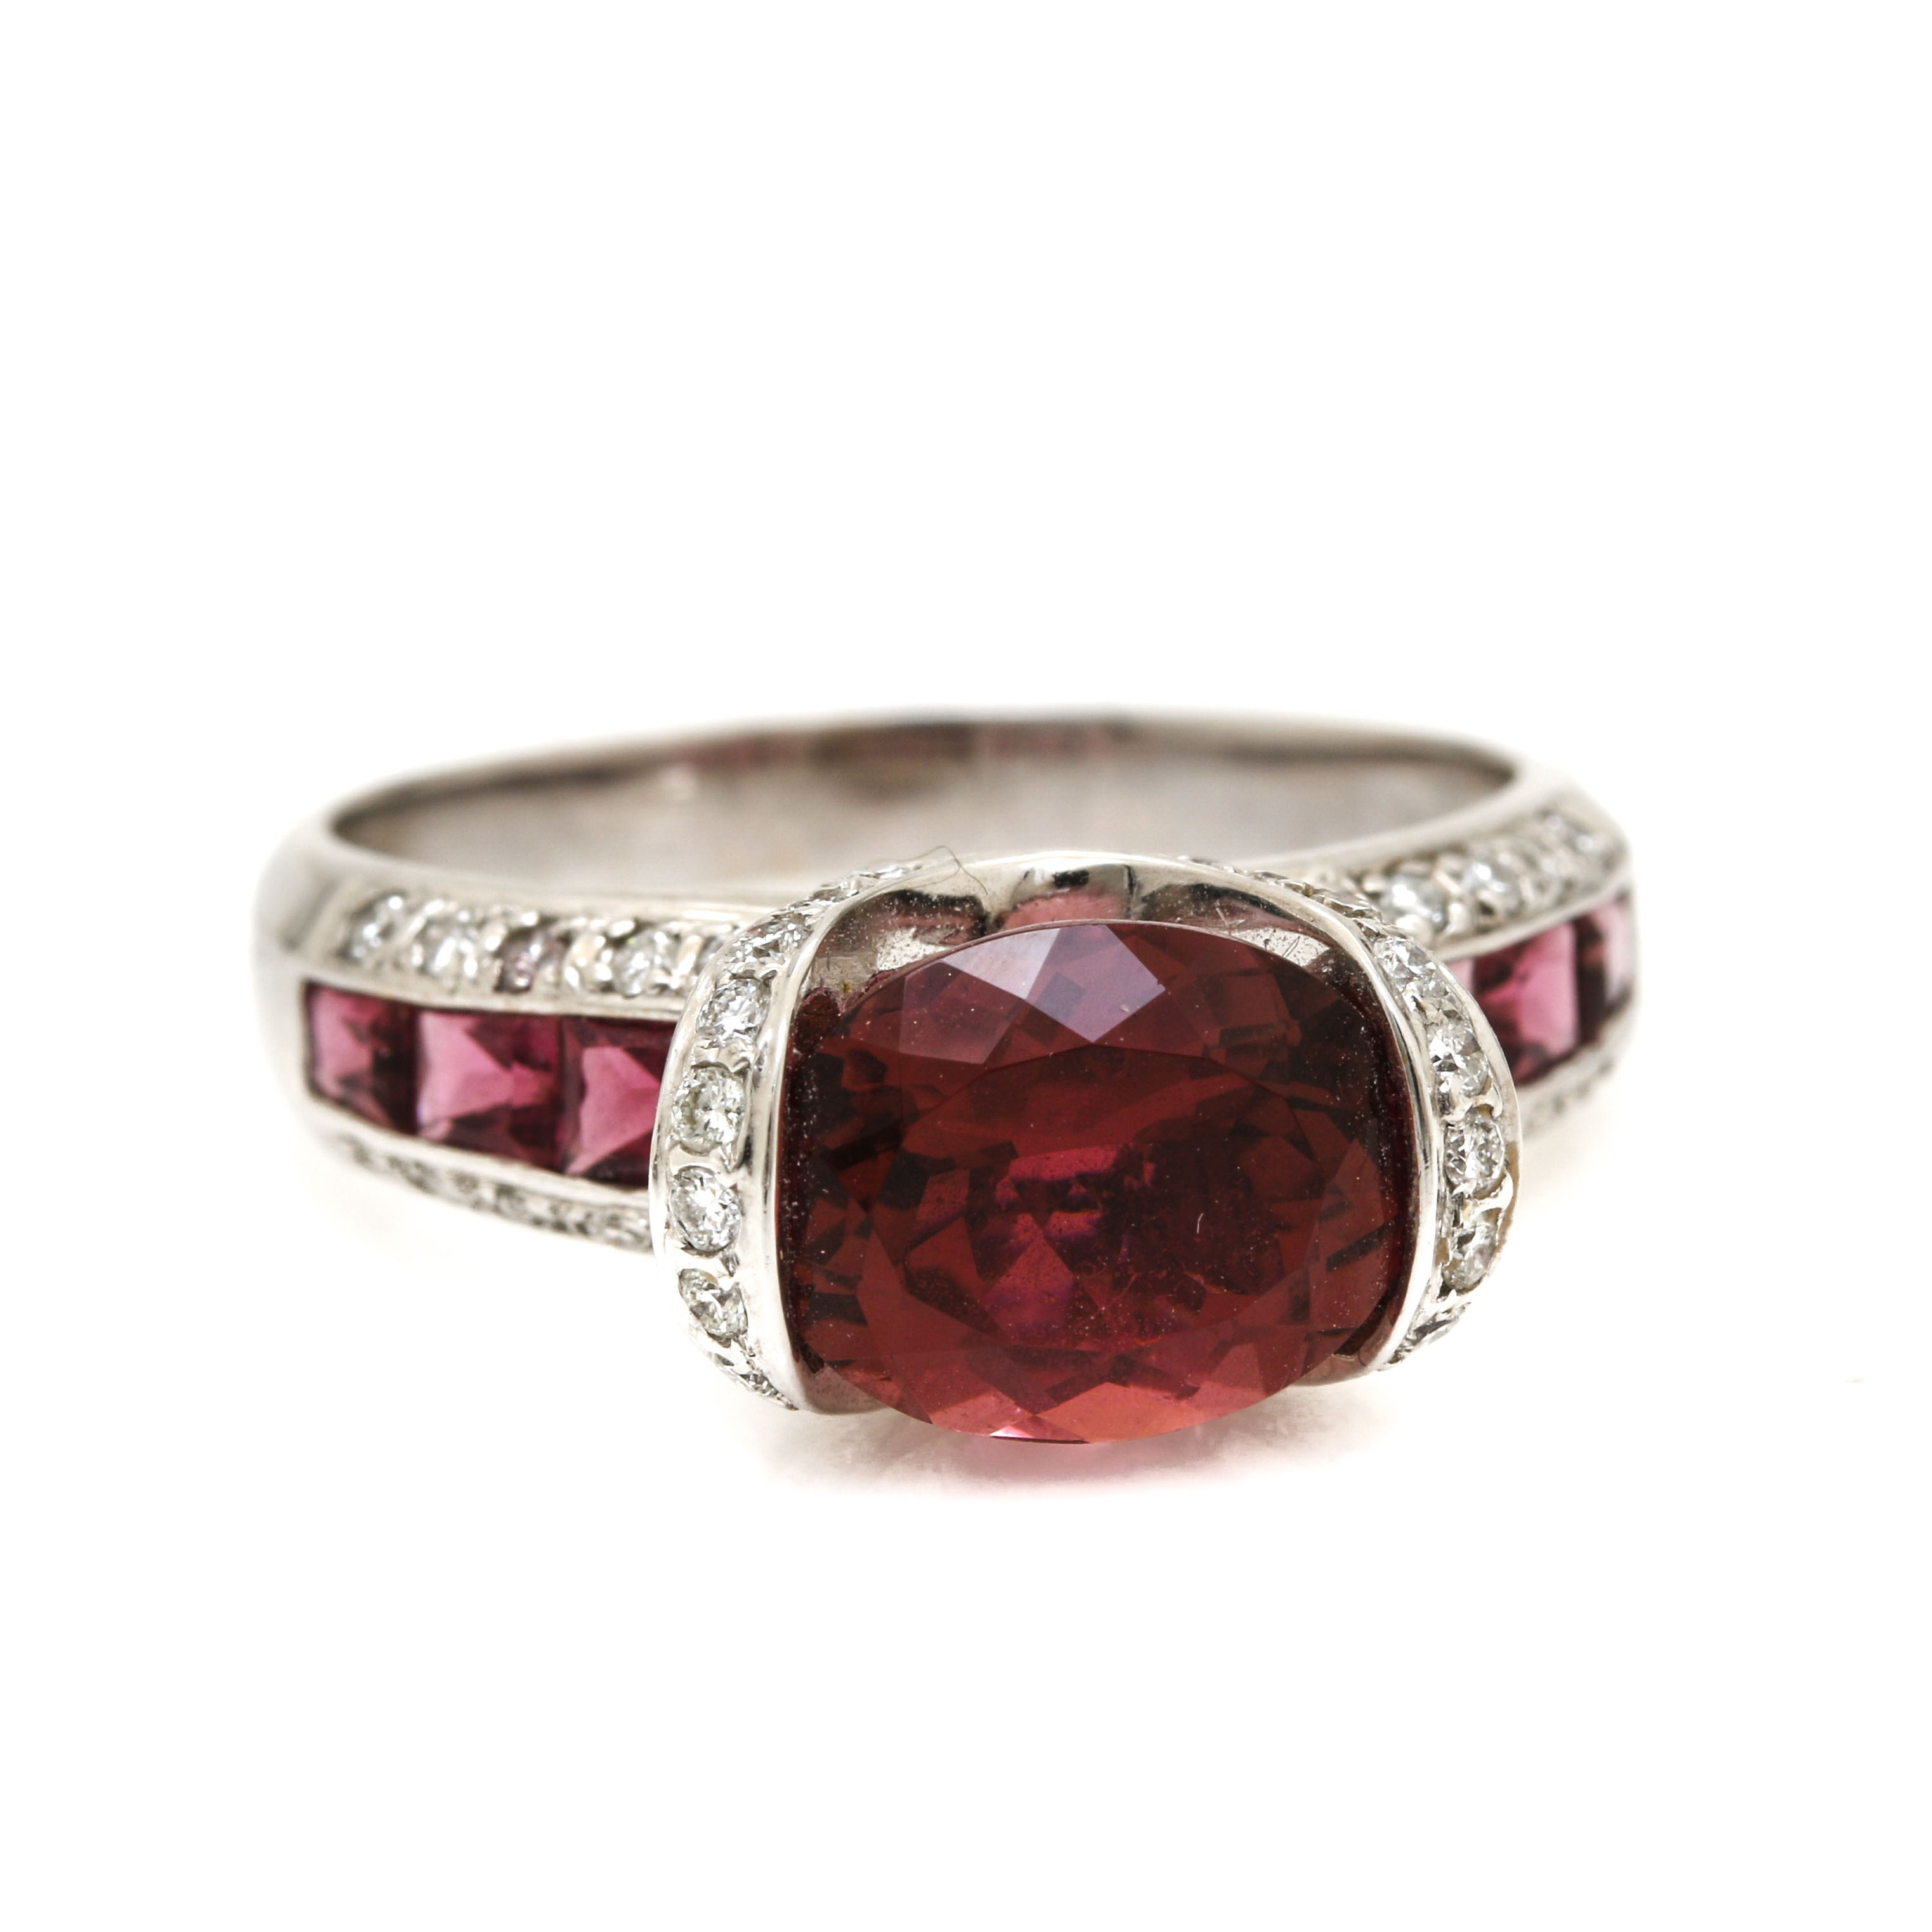 18K White Gold 3.02 CT Pink Tourmaline and Diamond Ring